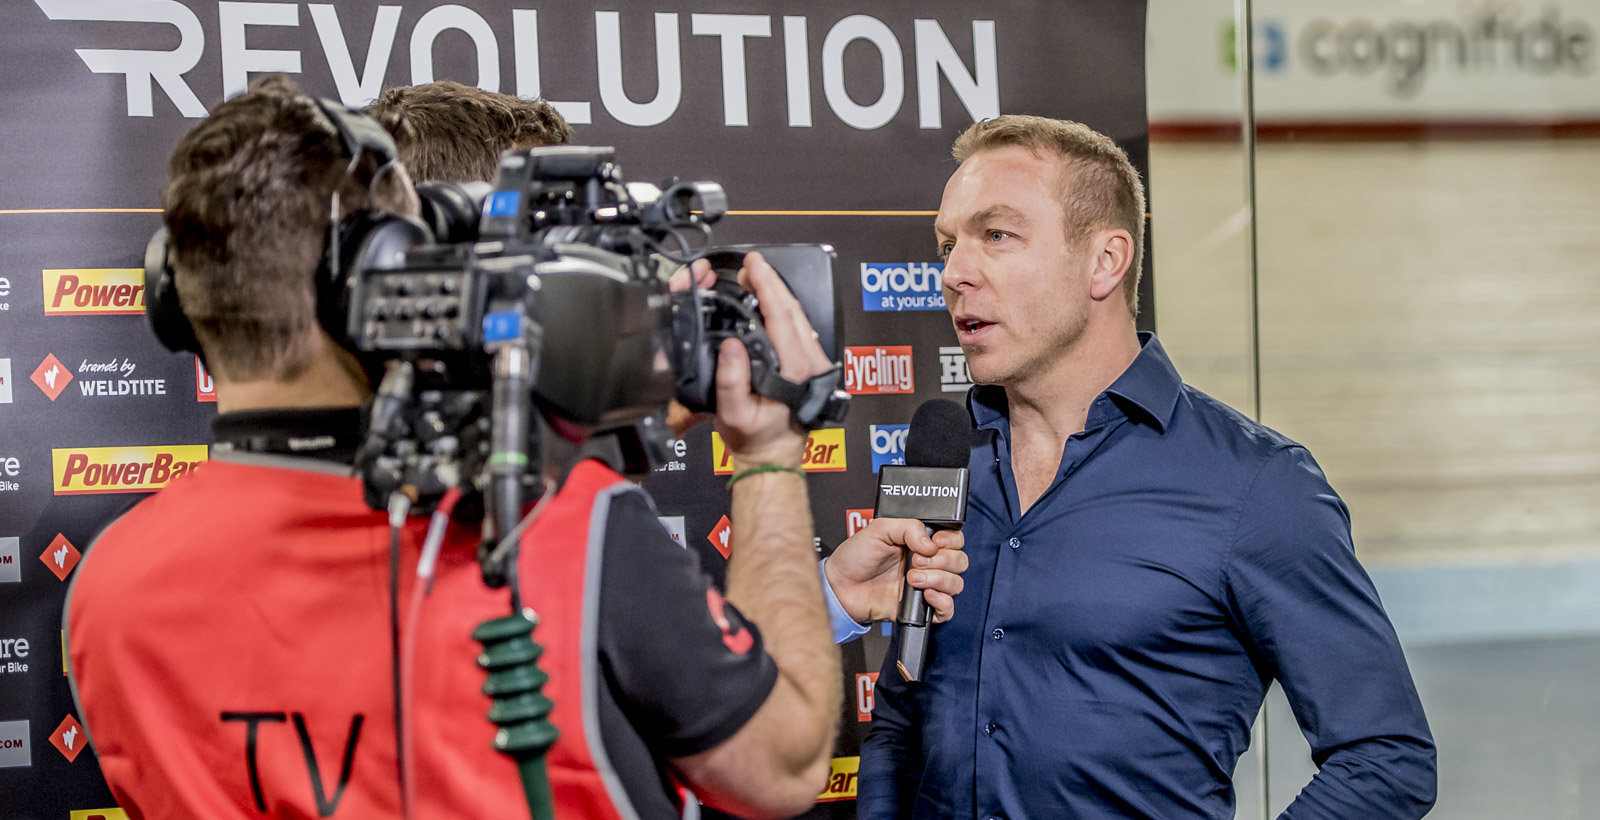 Sir Chris Hoy interviewed